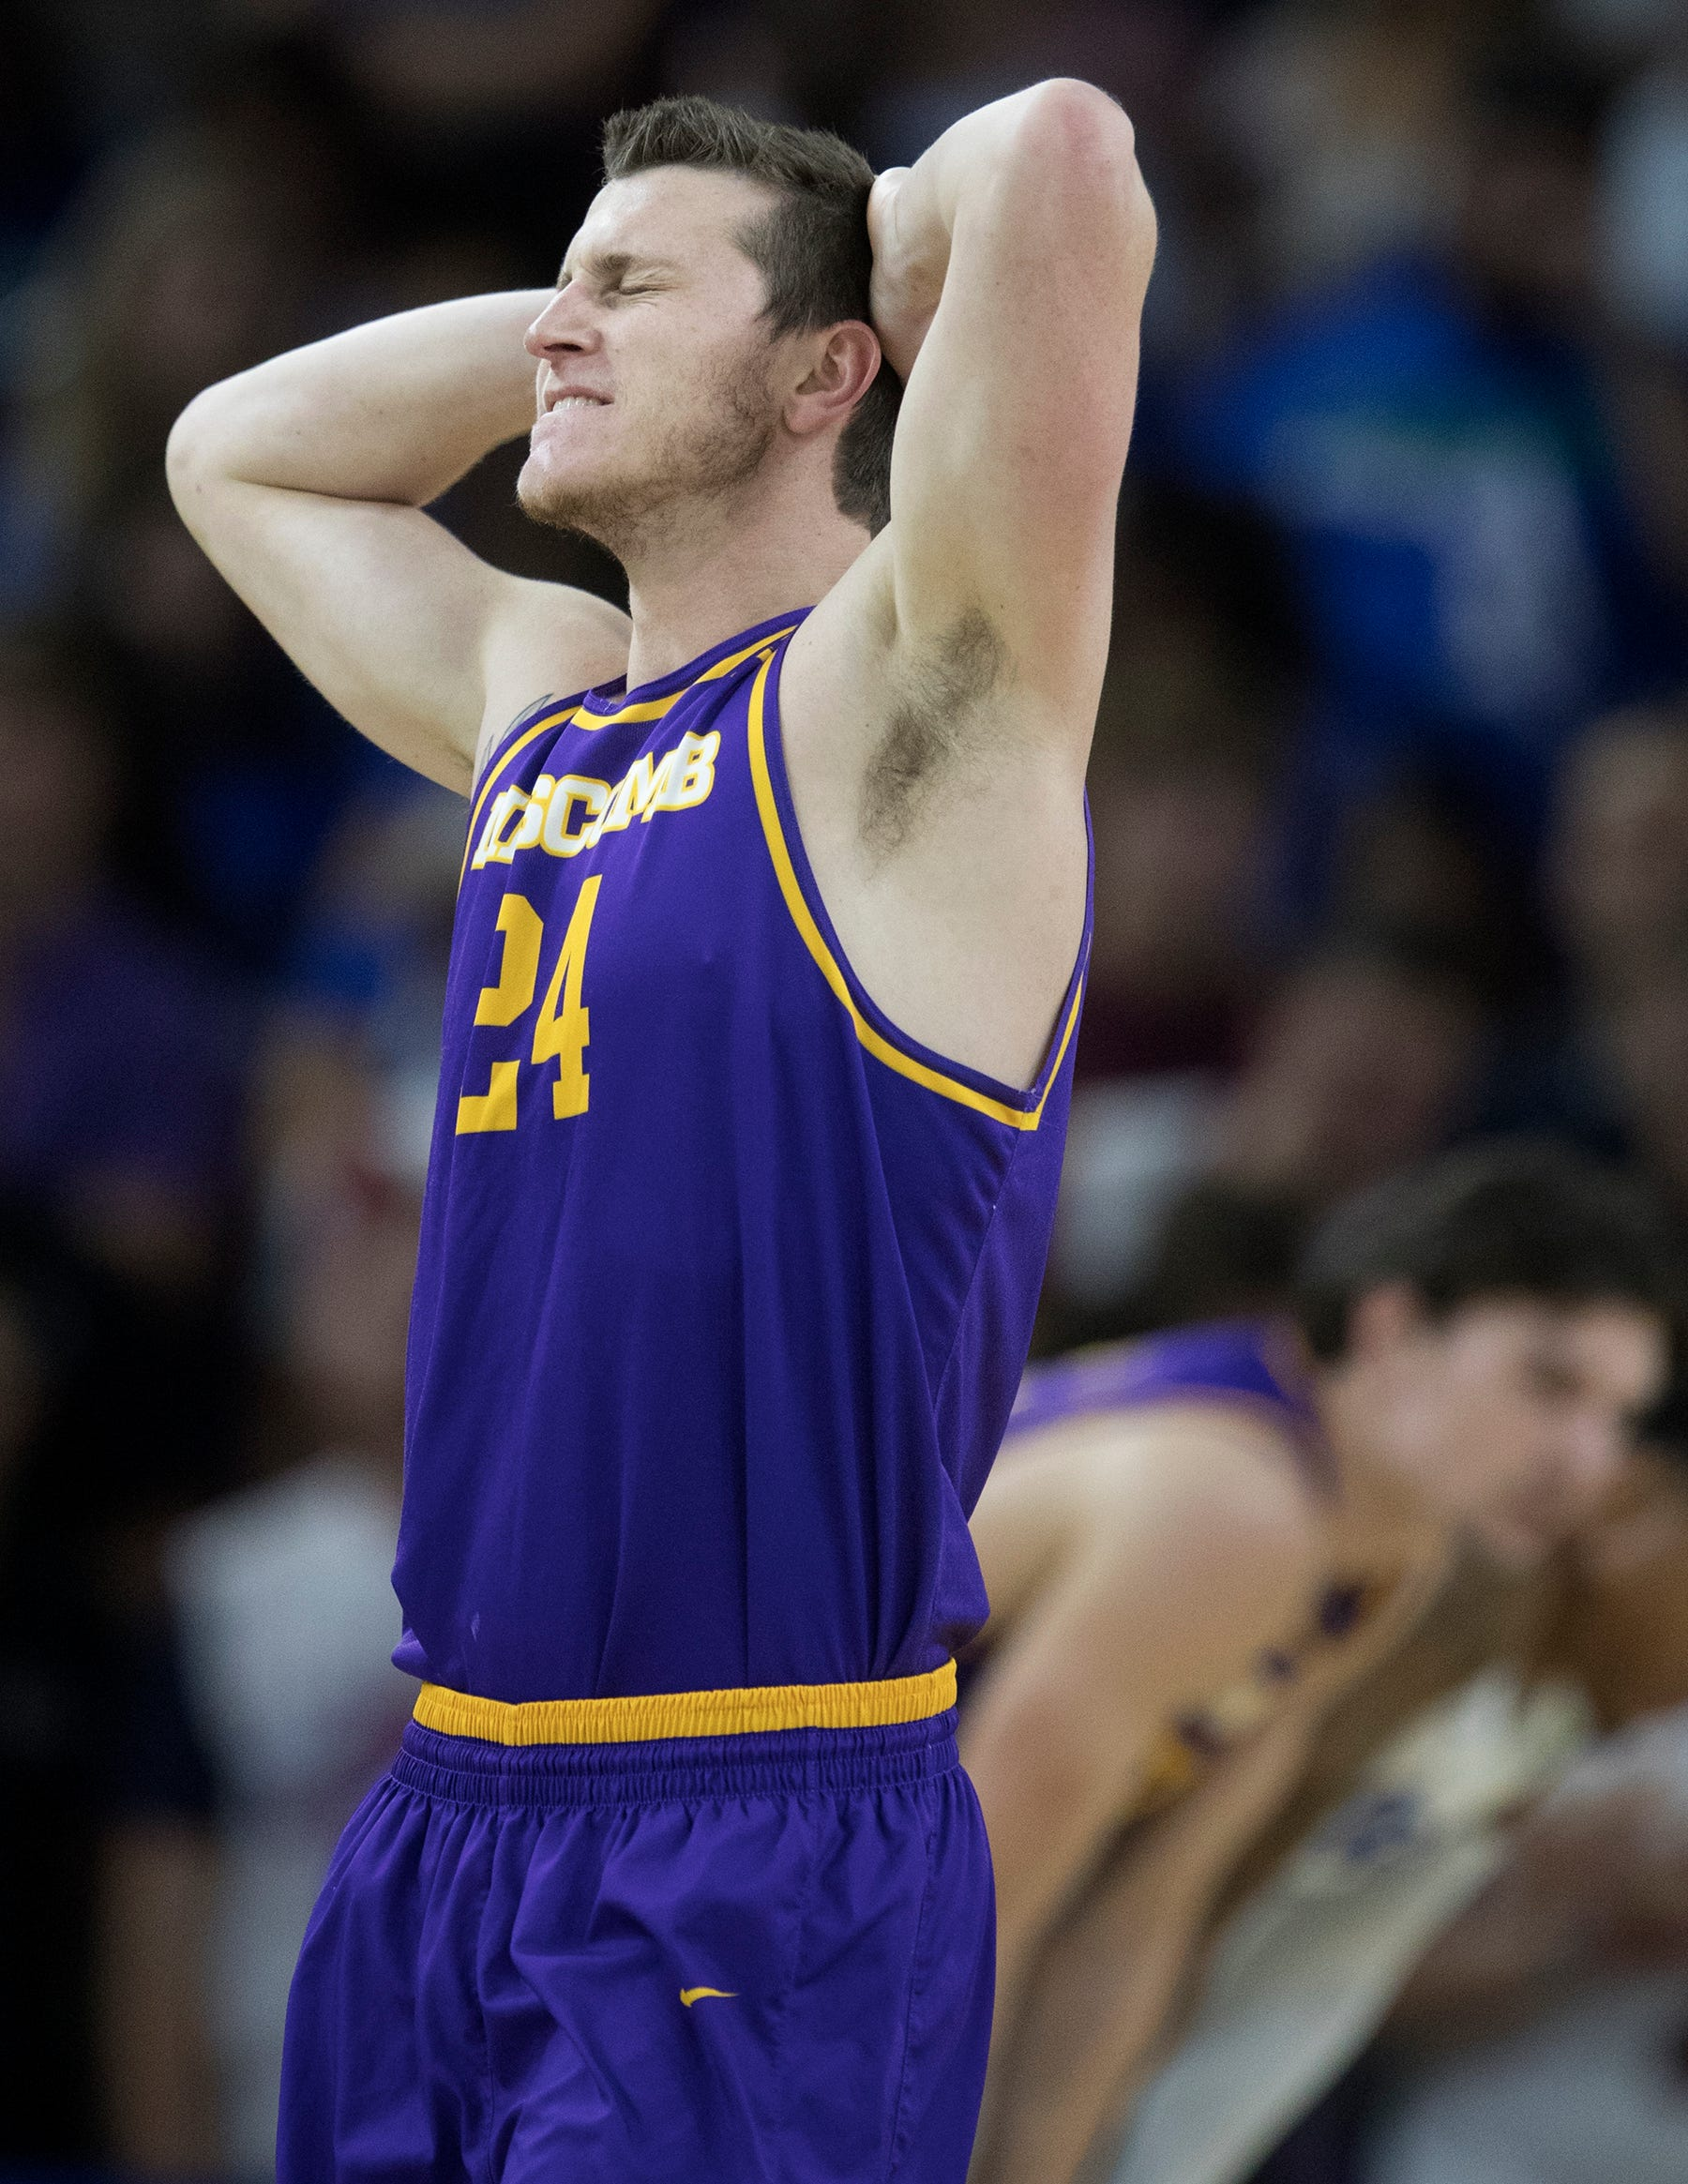 Lipscomb's Garrison Mathews reacts to fouling a FGCU player on Wednesday at FGCU in Fort Myers. FGCU beat Lipscomb 67-61.